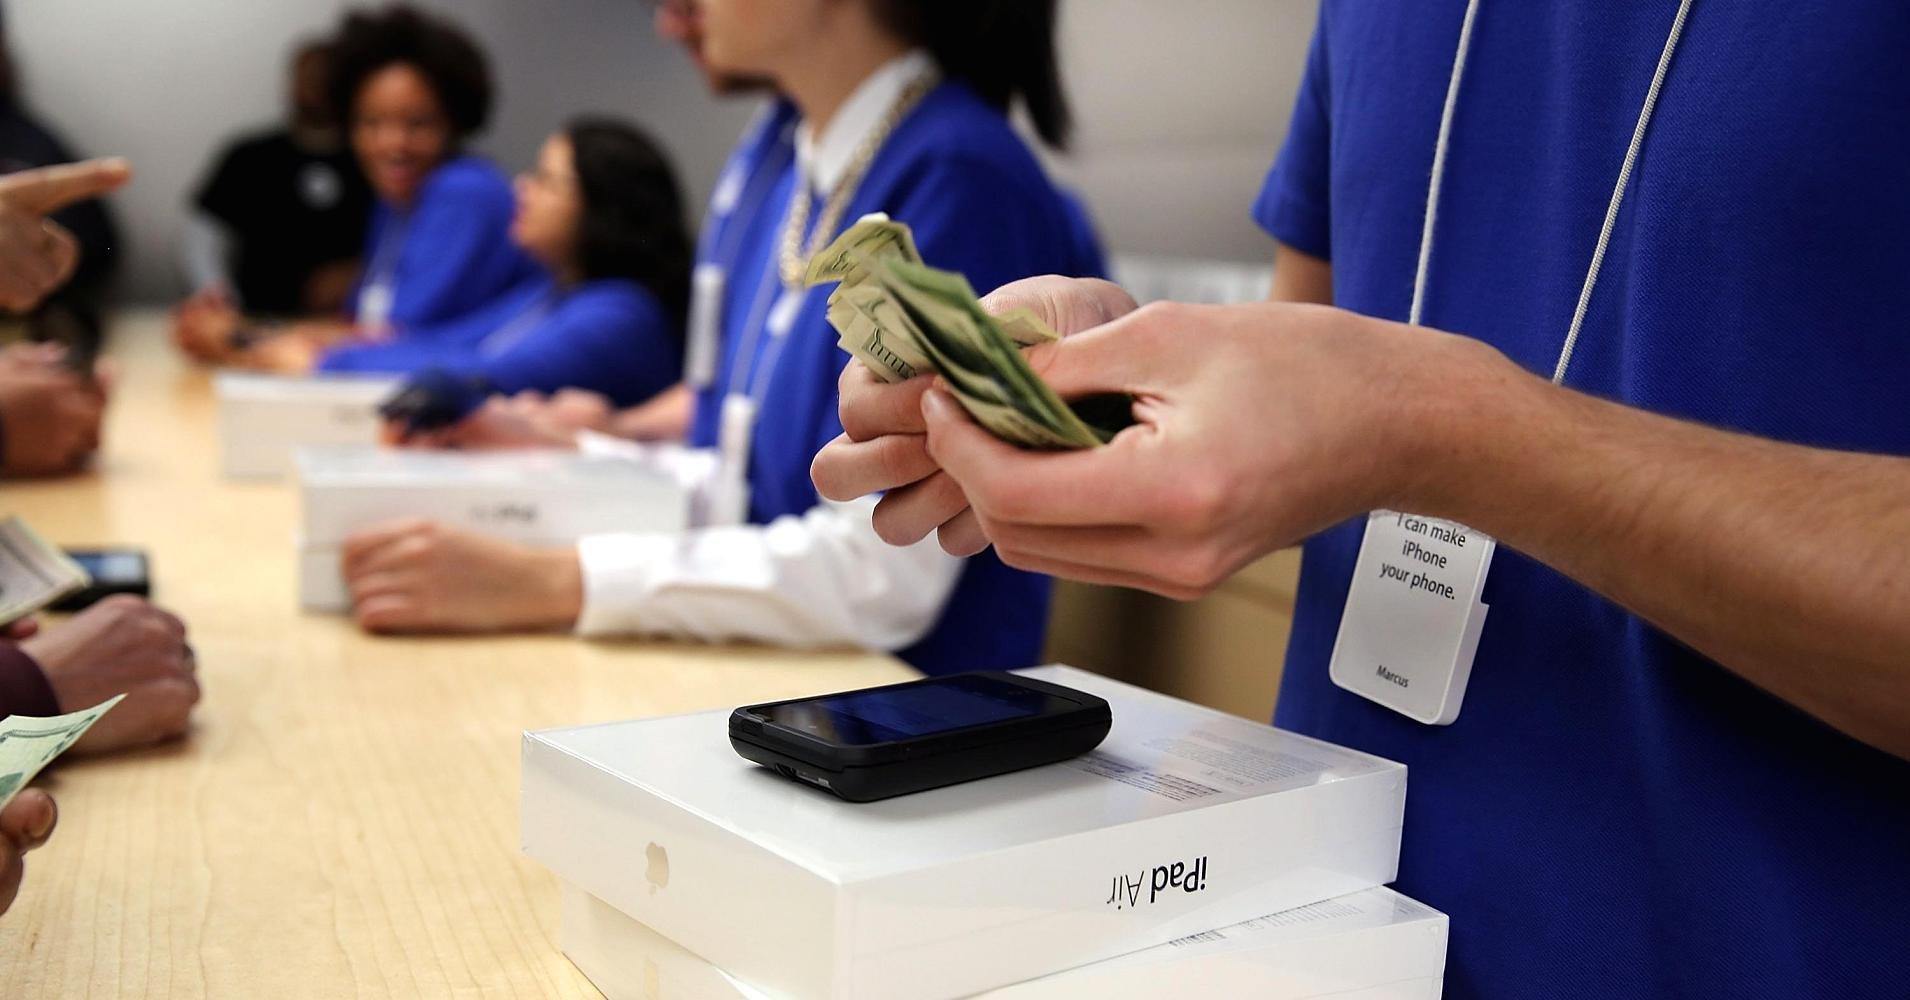 So, what could you buy with all that Apple cash?